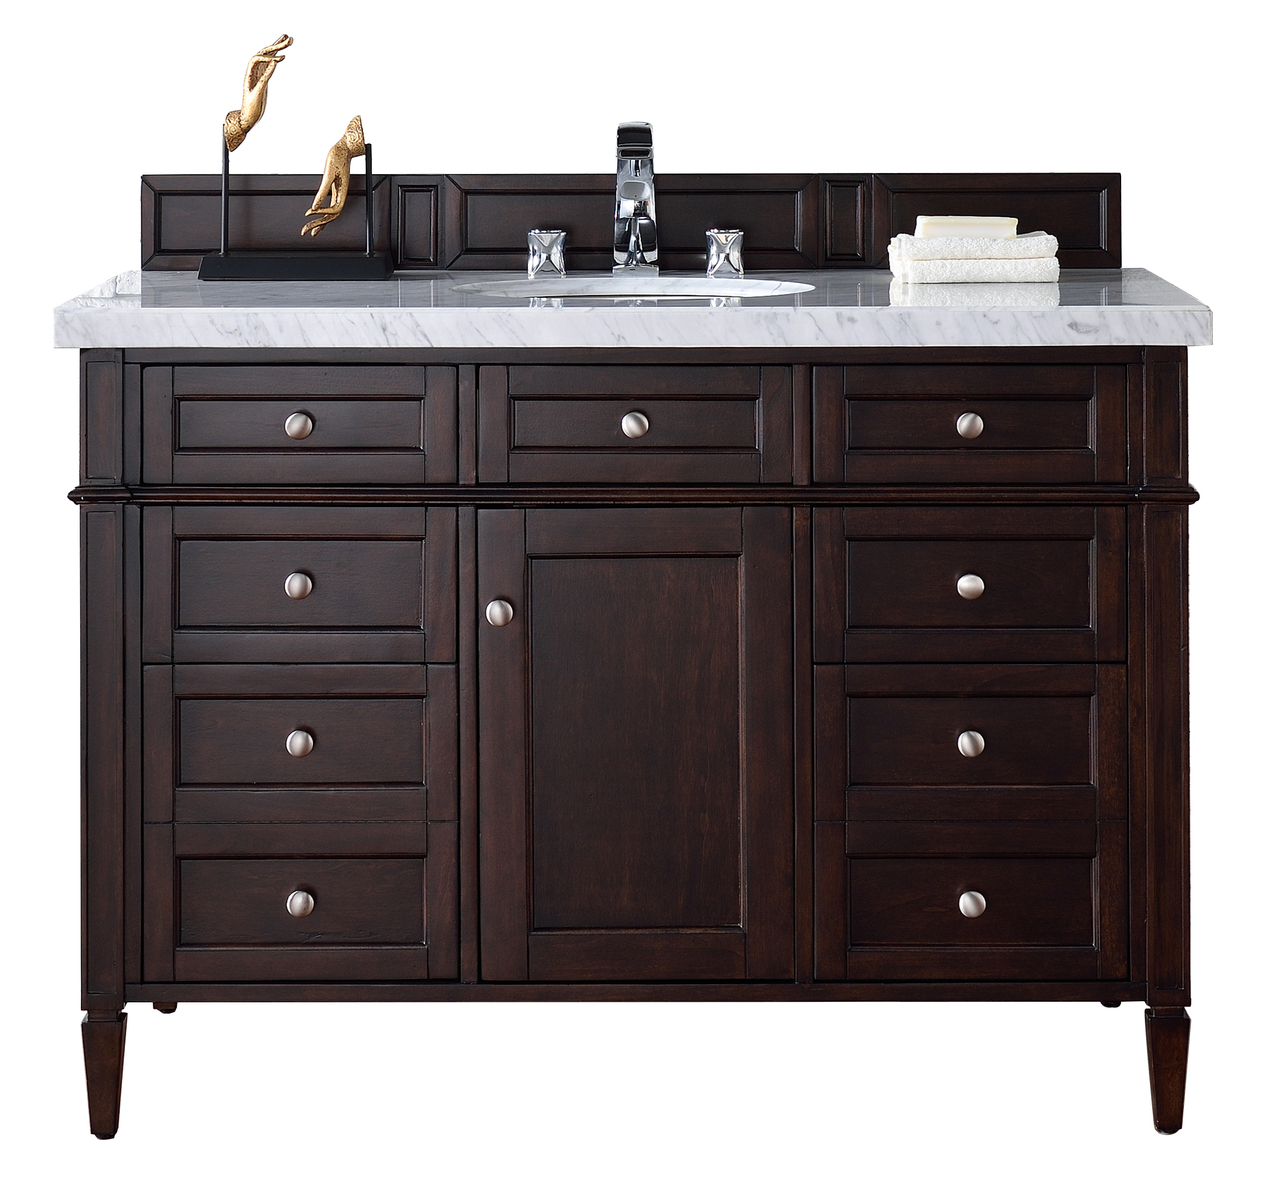 Contemporary 48 inch single bathroom vanity mahogany for Bathroom 48 inch vanity